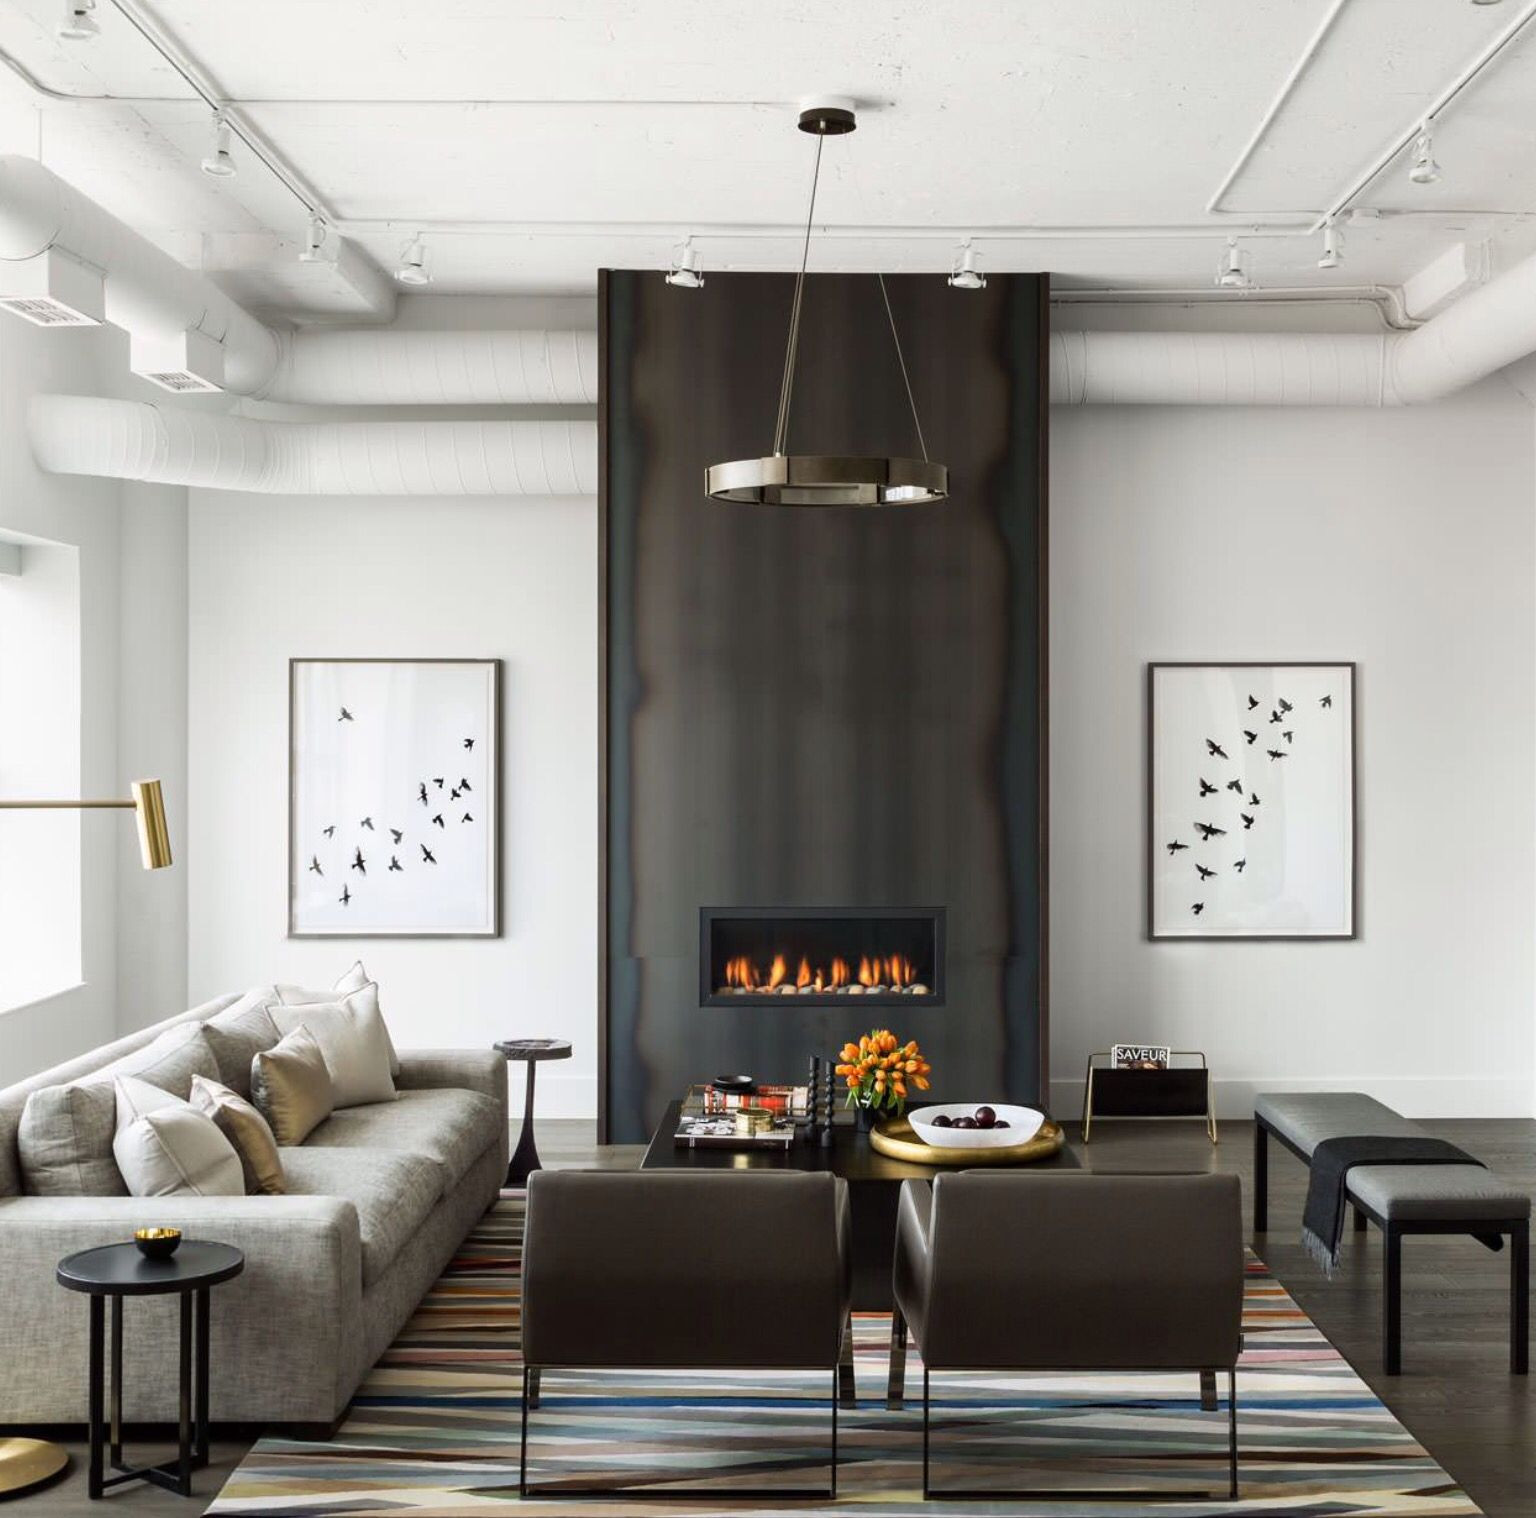 houzz living rooms with hardwood floors of this hot rolled steel fireplace surround is stunning uploaded from within this hot rolled steel fireplace surround is stunning uploaded from houzz croma design inc